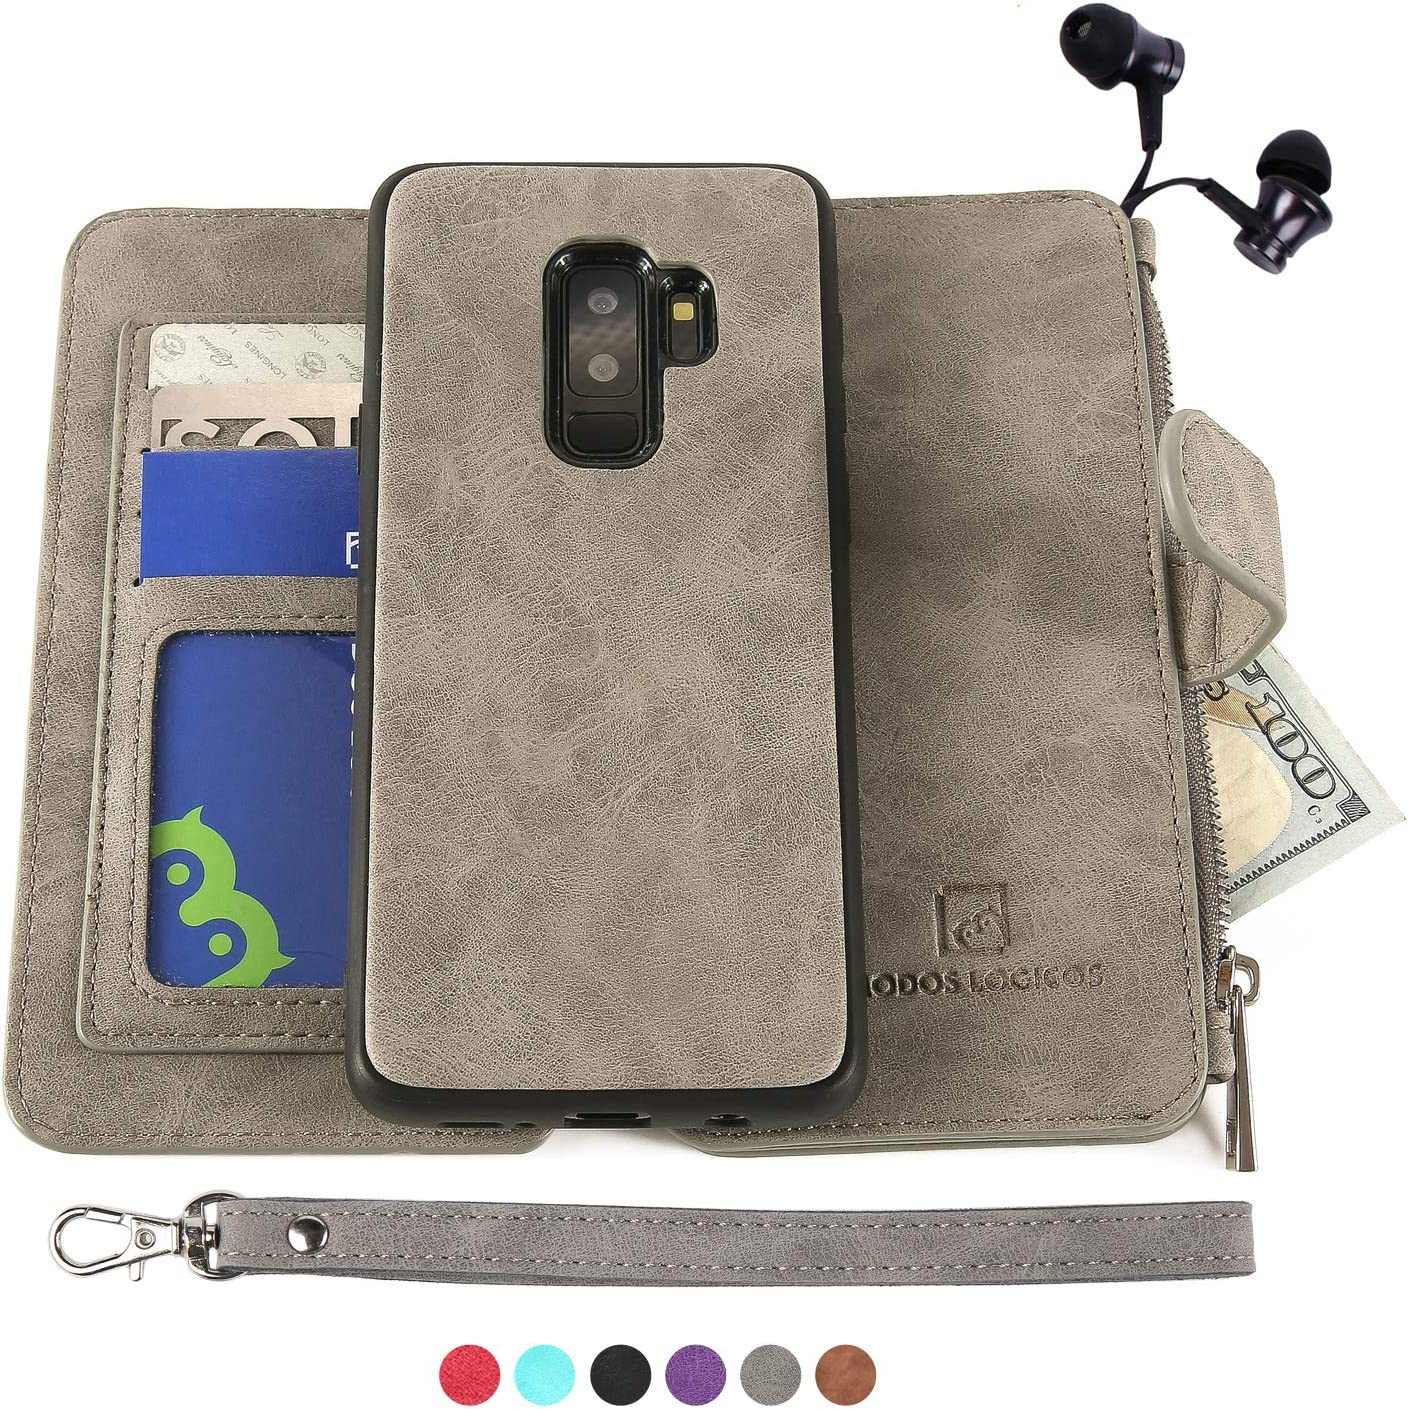 Samsung Galaxy S9 Plus Case, [Detachable Wallet Folio][2 in 1][Zipper Cash Storage][Up to 14 Card Slots 1 Photo Window] PU Leather Purse Clutch with Removable Inner Magnetic TPU Case - Grey